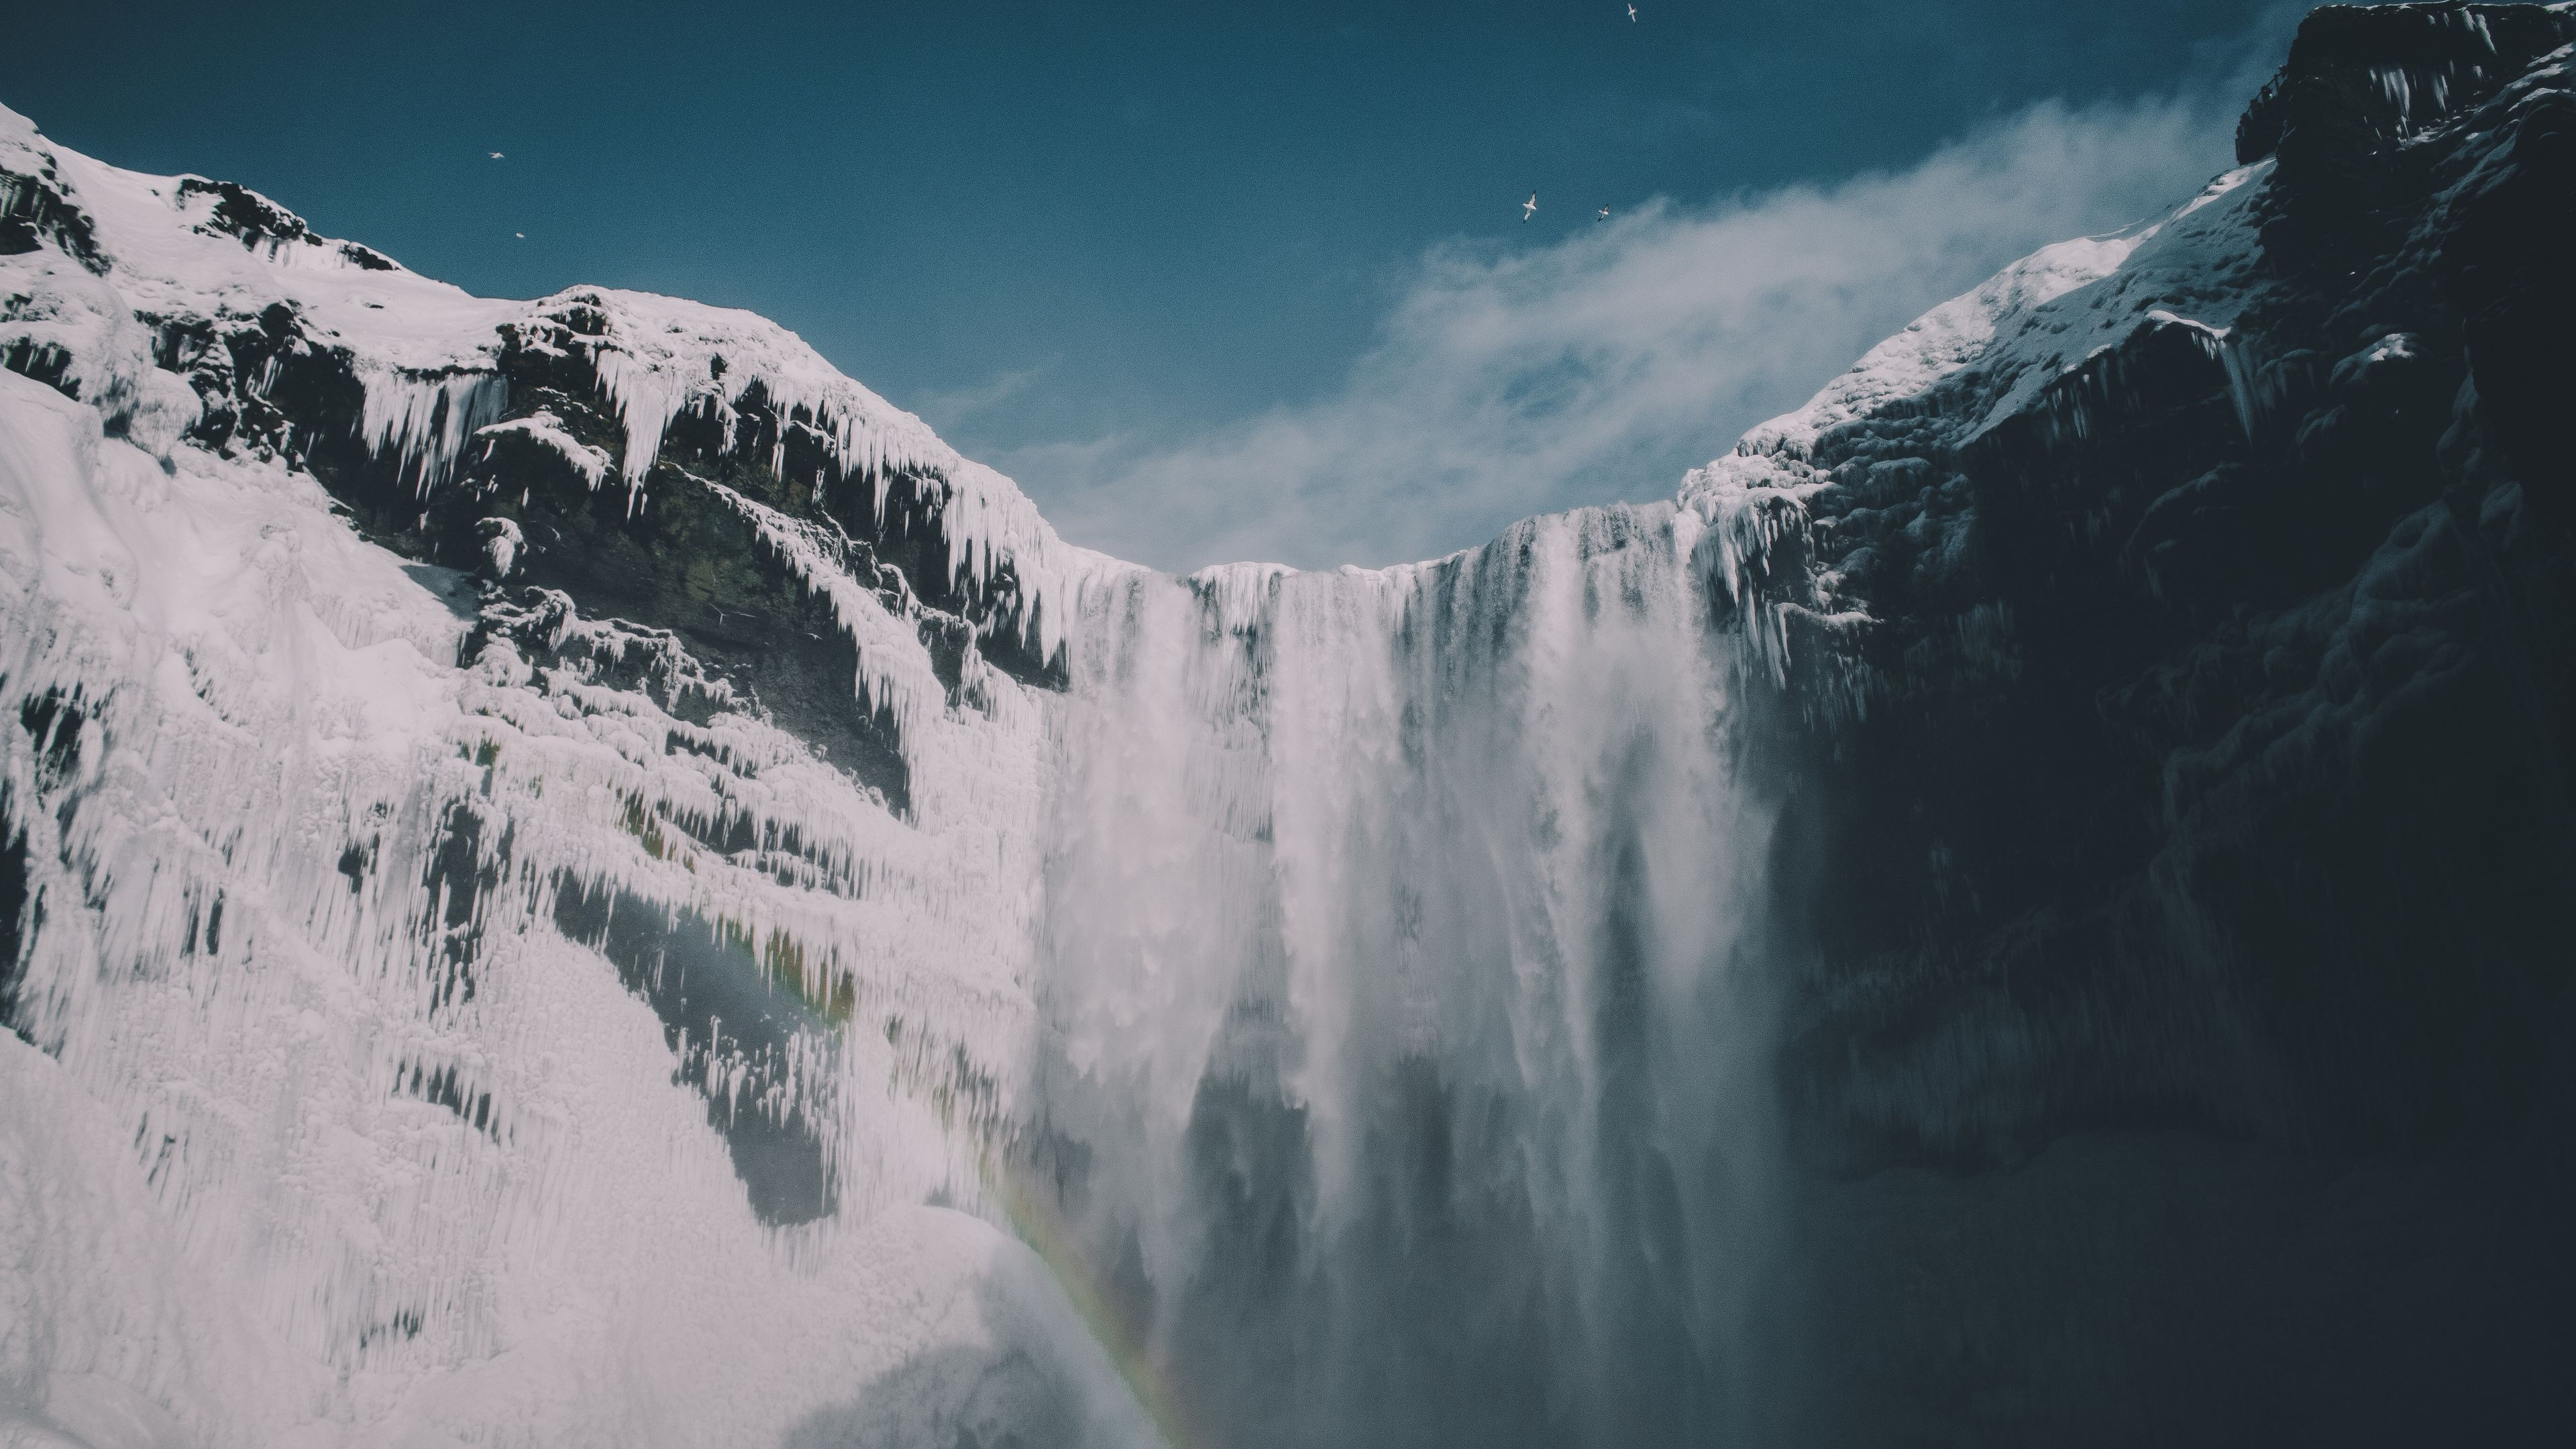 Wallpaper 4k Blue Sky Waterfall Snow Iceland Mountains 4k